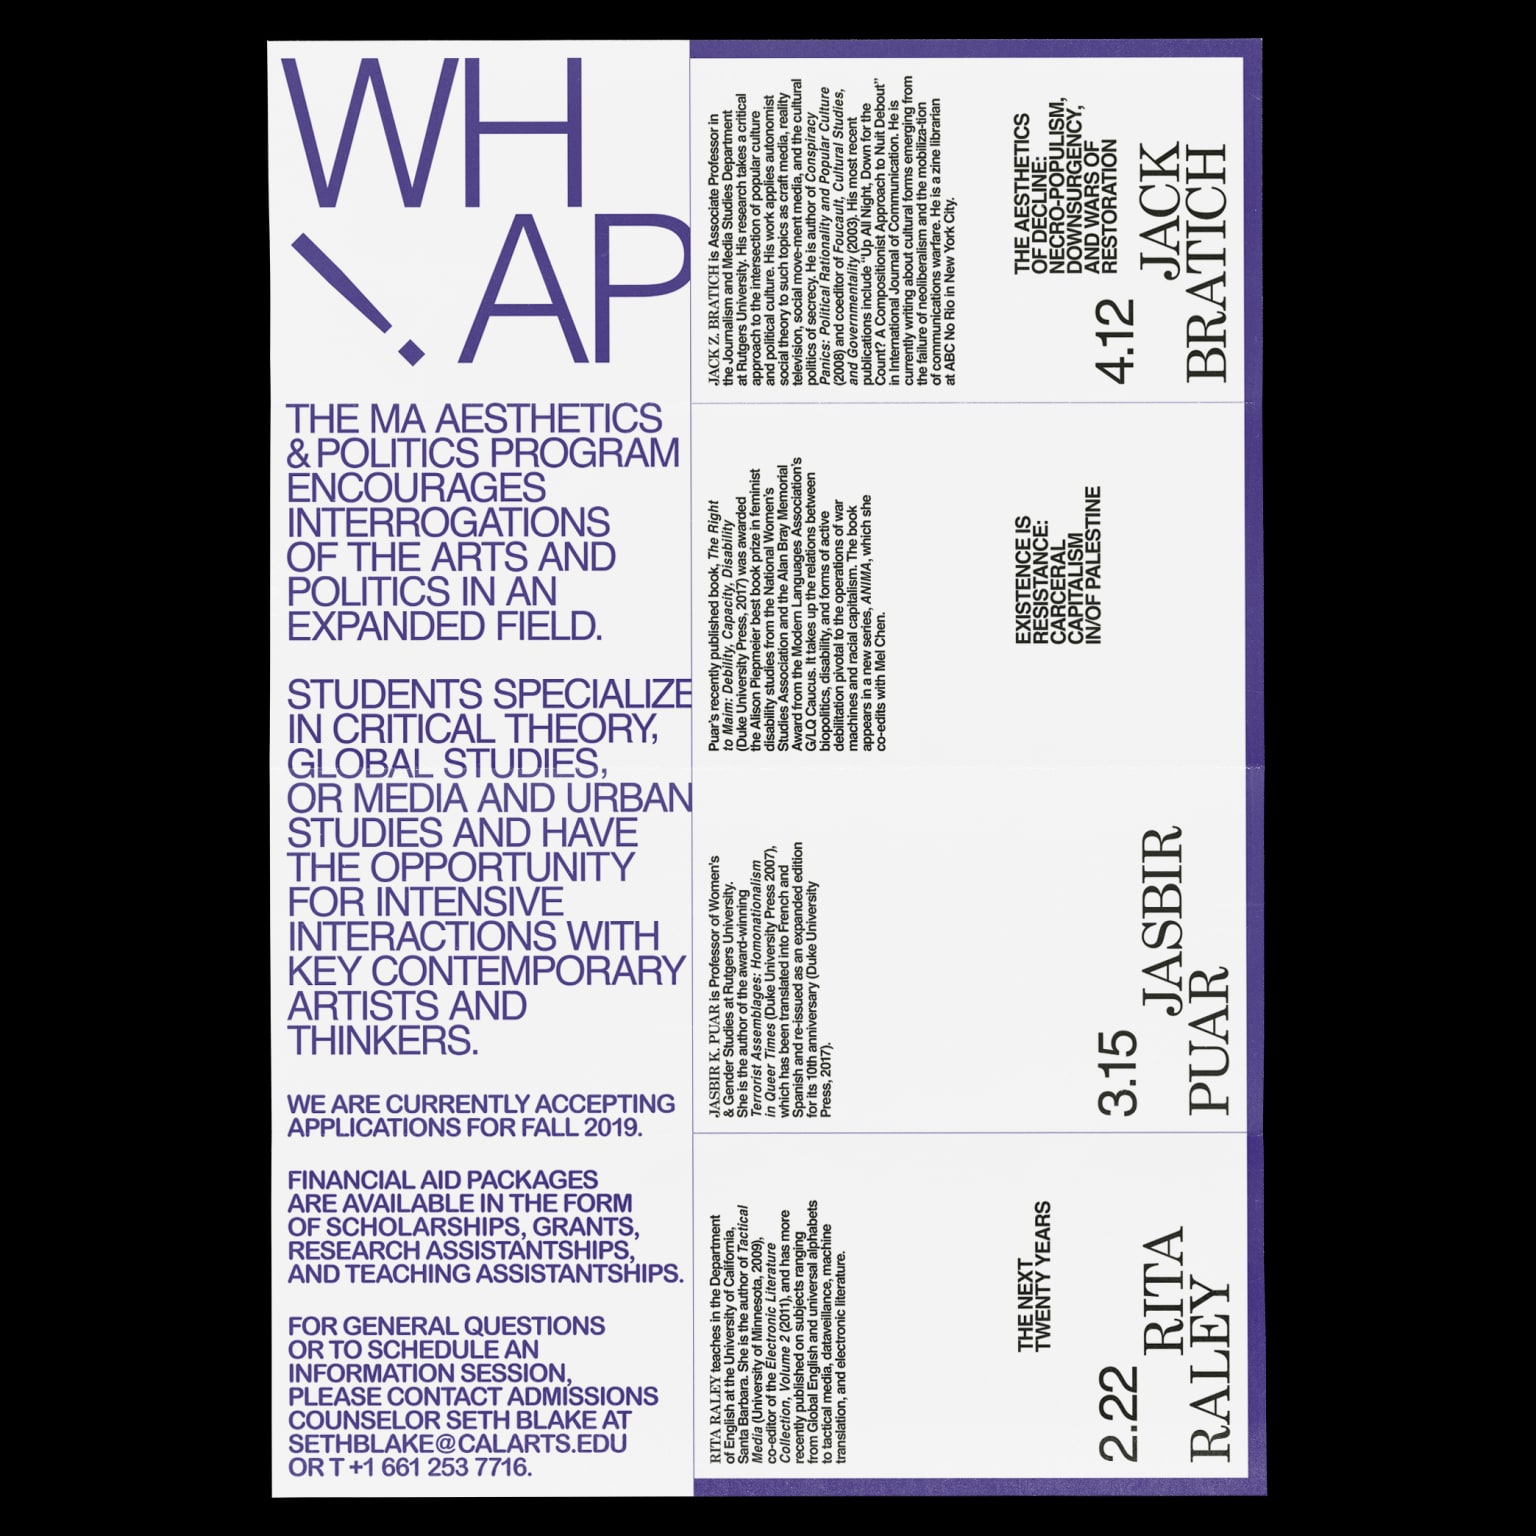 Spring 2019 WHAP Lecture Series Poster